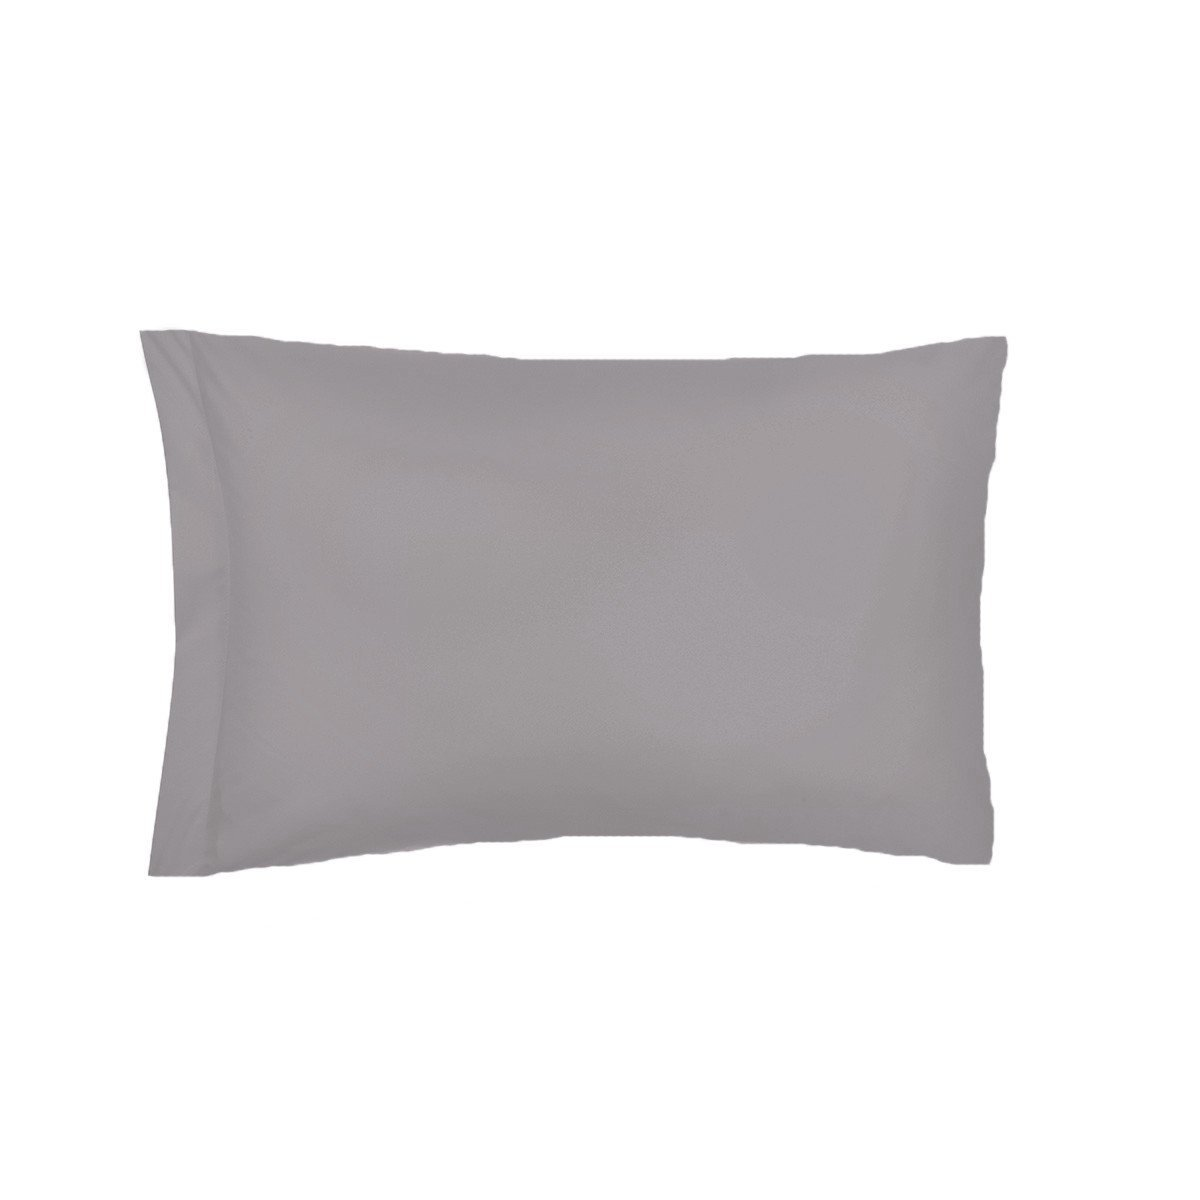 Roma Platine Gray Bedding Collection by Yves Delorme | Fig Linens - Gray bed linen, pillowcase